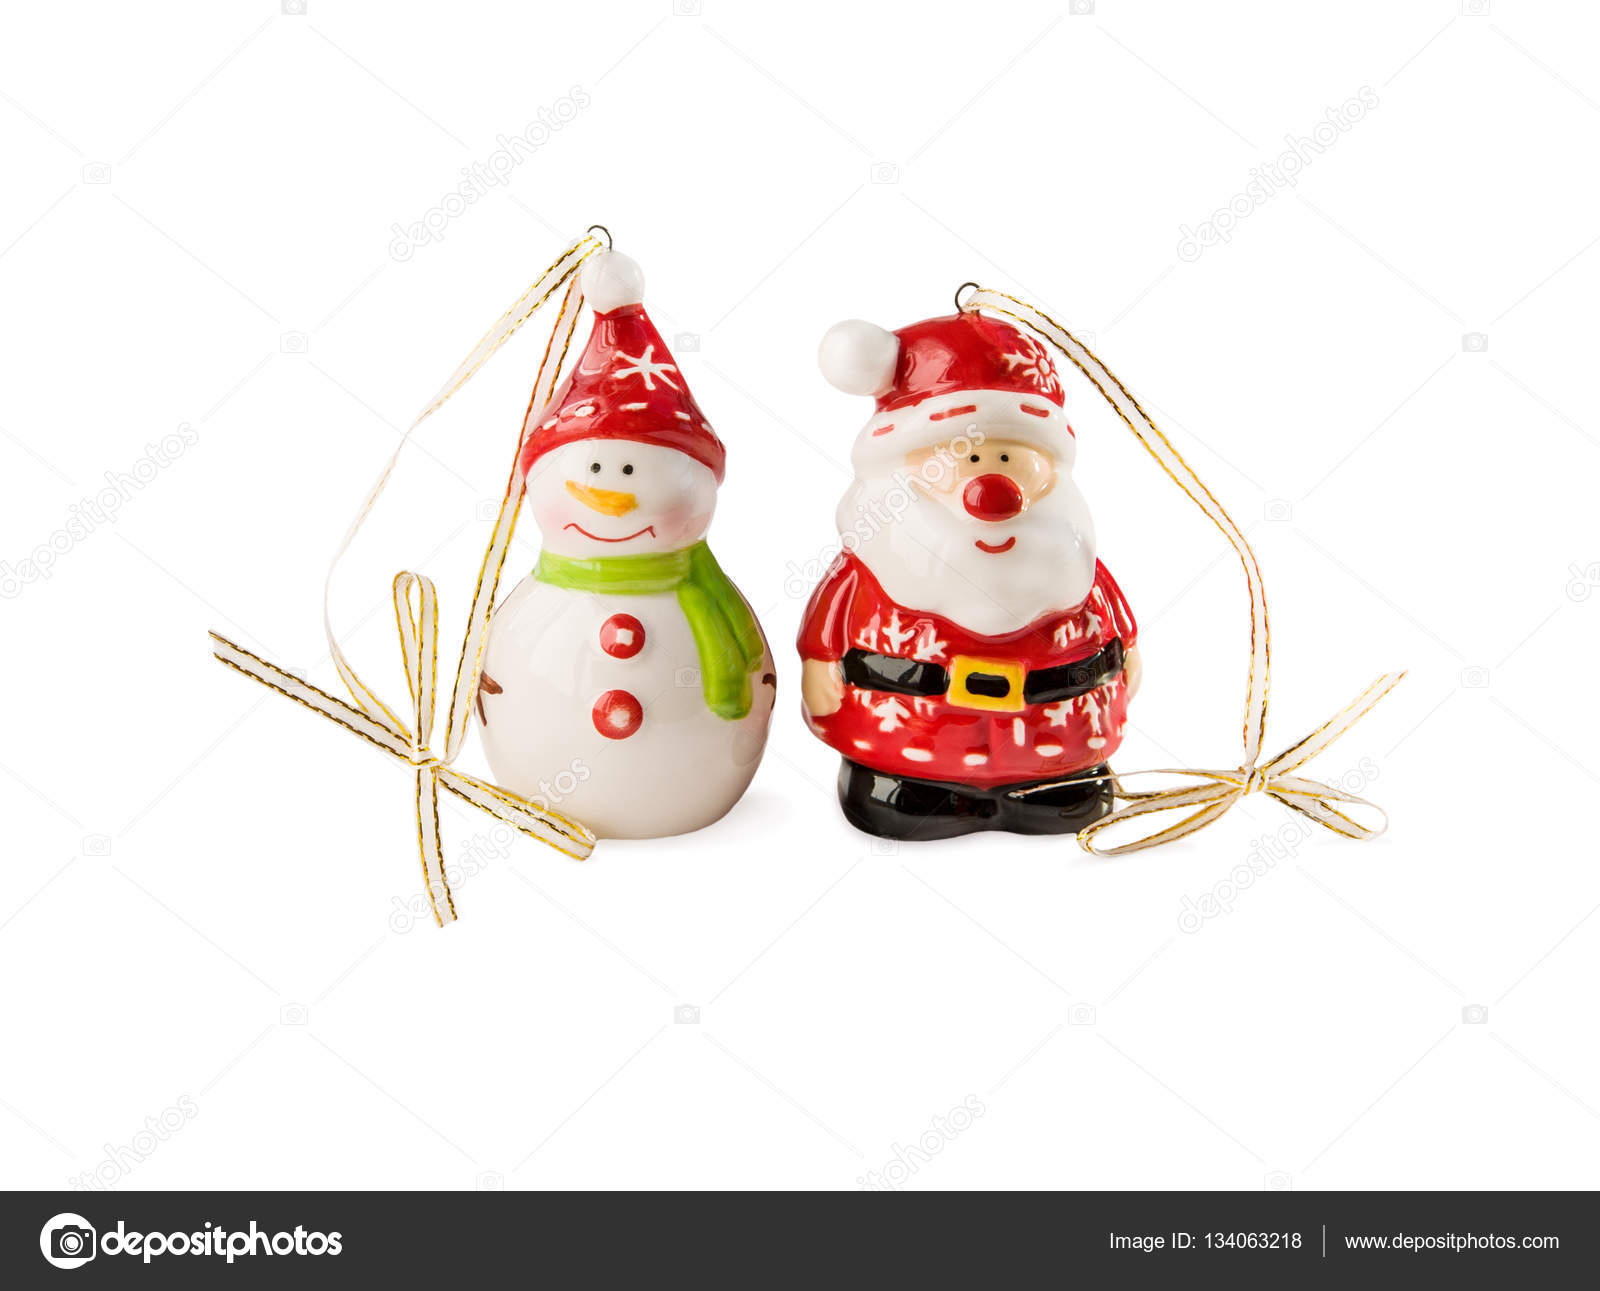 Christmas and New Year's decorations. Funny Snowman and Santa Claus toys made of porcelain isolated over white. — Photo by luckylia